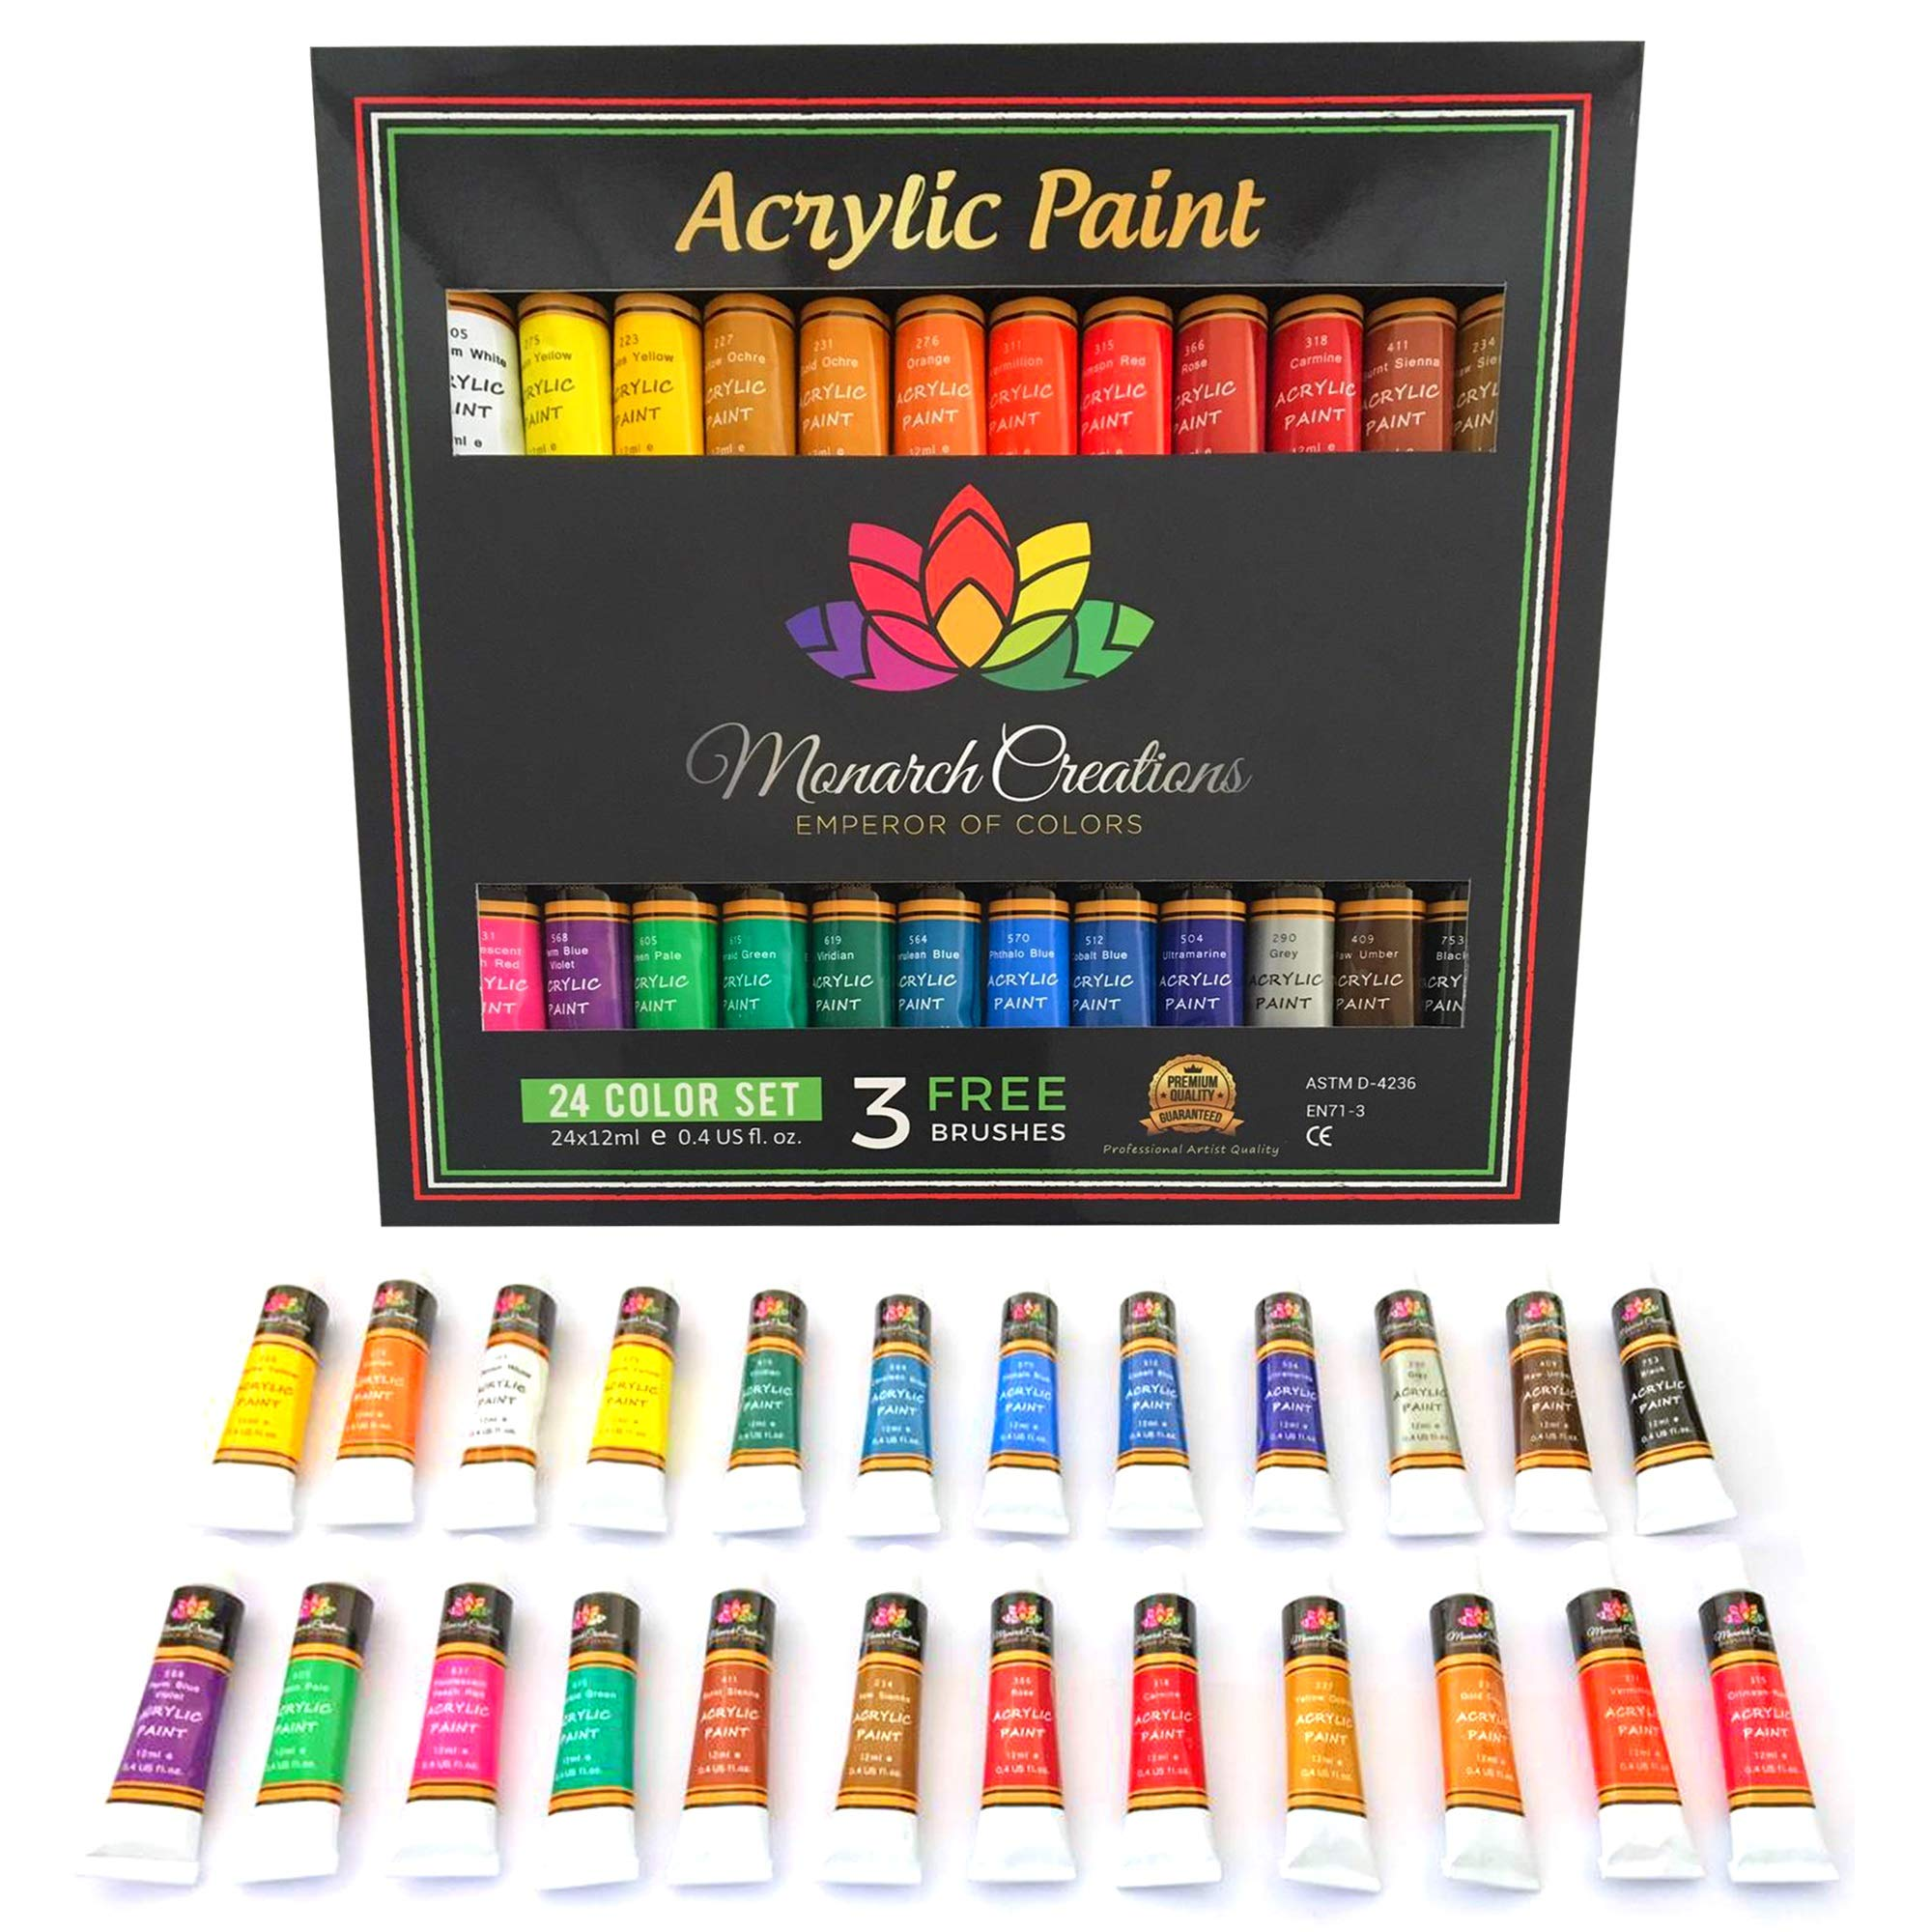 Acrylic paint set 24 colors for Artists. Brush set. Paint kit for Canvas, Rocks, Wood, Ceramic, Fabric, Crafts. Non-Toxic & Vibrant-Perfect for Adults, Kids, Beginners, students. Rich Pigment & qualit by Monarch Creations